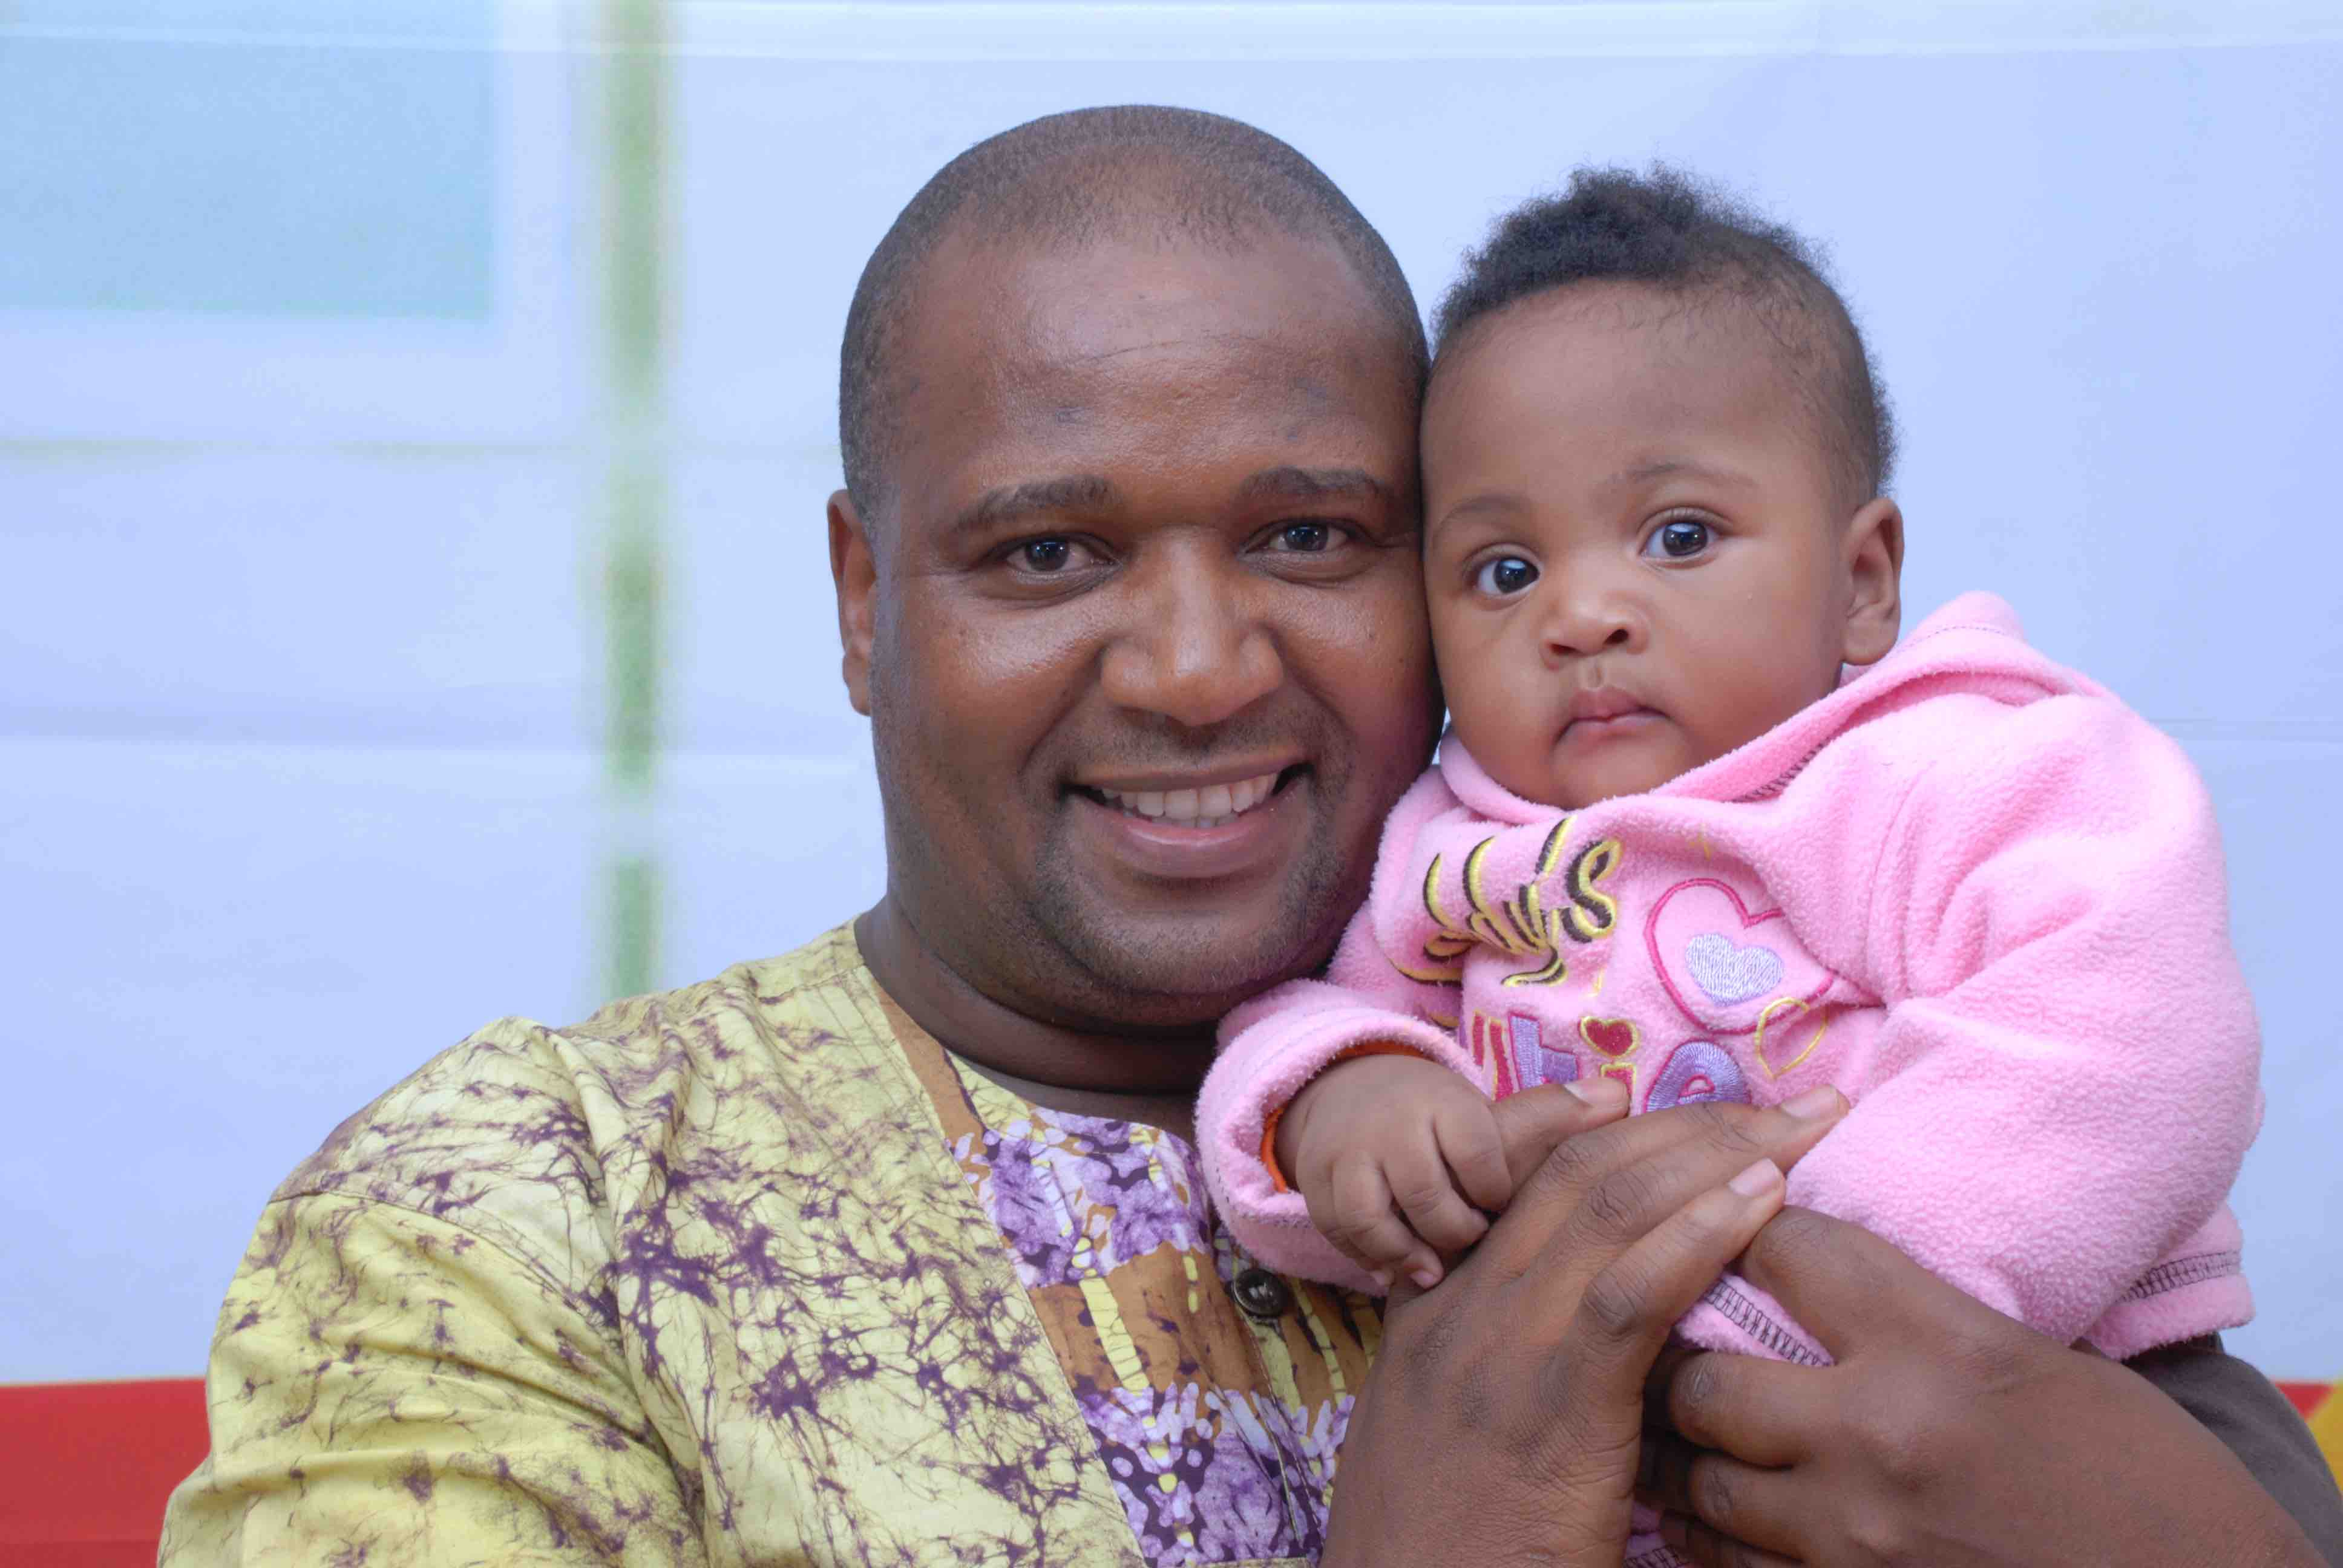 Themba smiles and poses for the cameras with a young baby